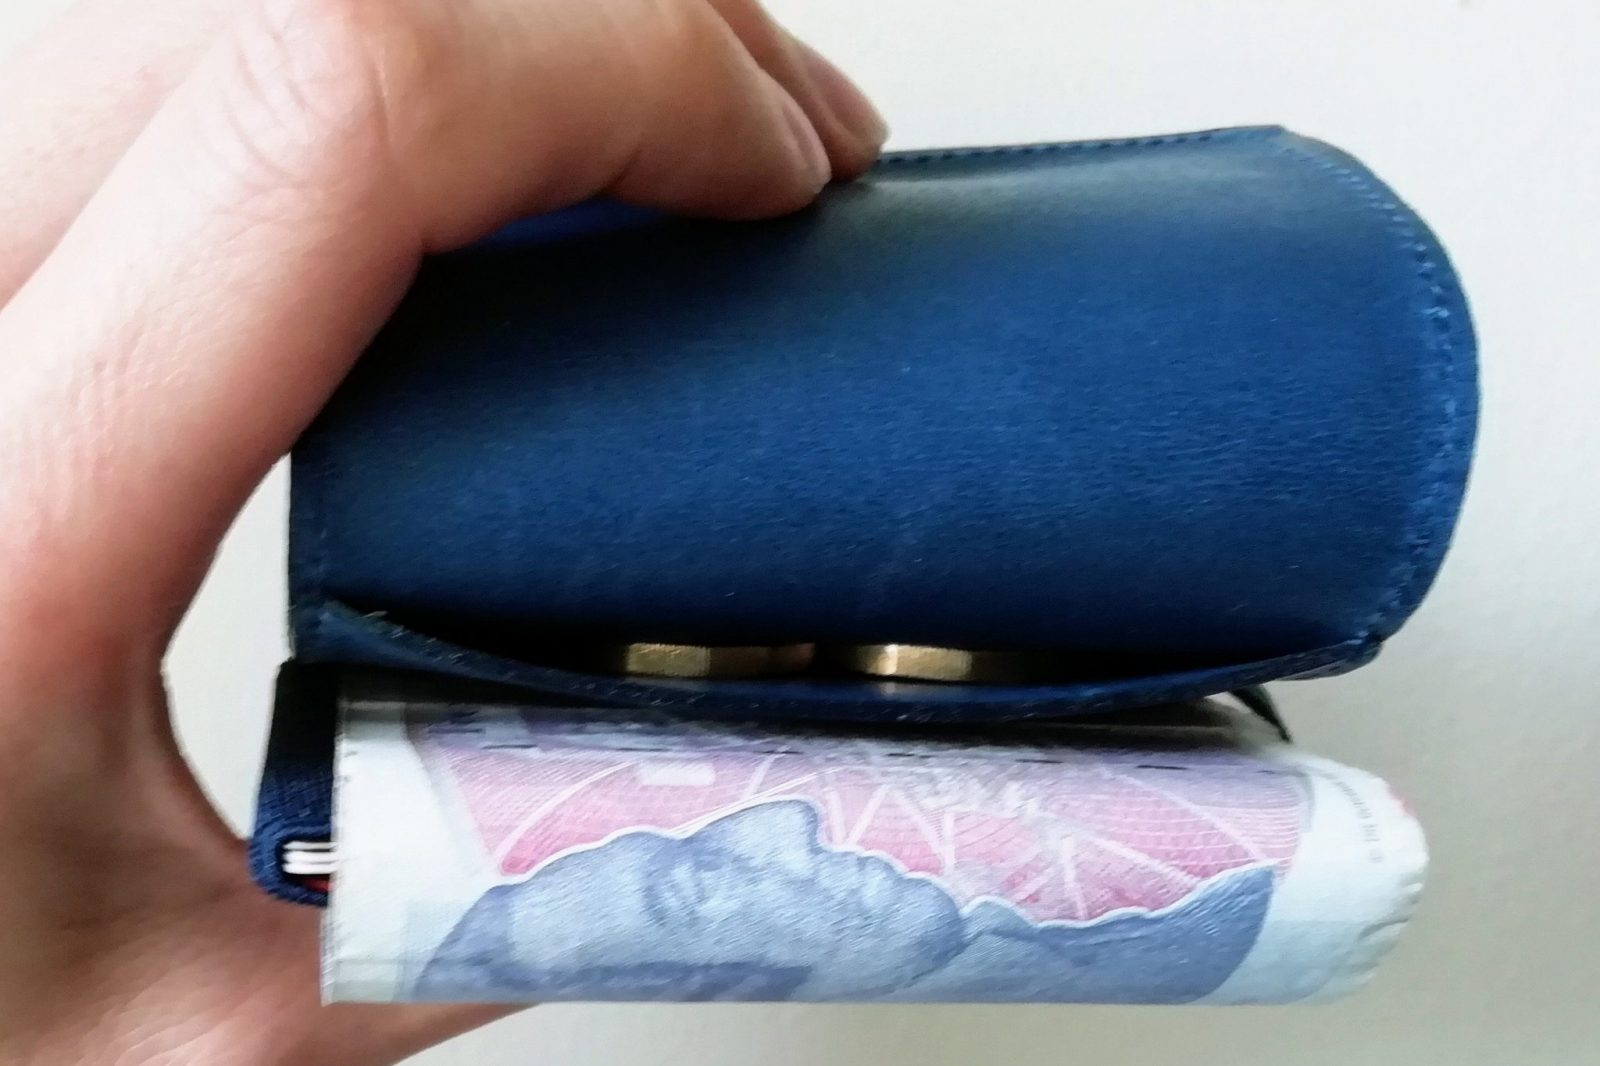 Trove Swift & Cash Wrap Wallet Review: The Perfect Travel Wallet? 4